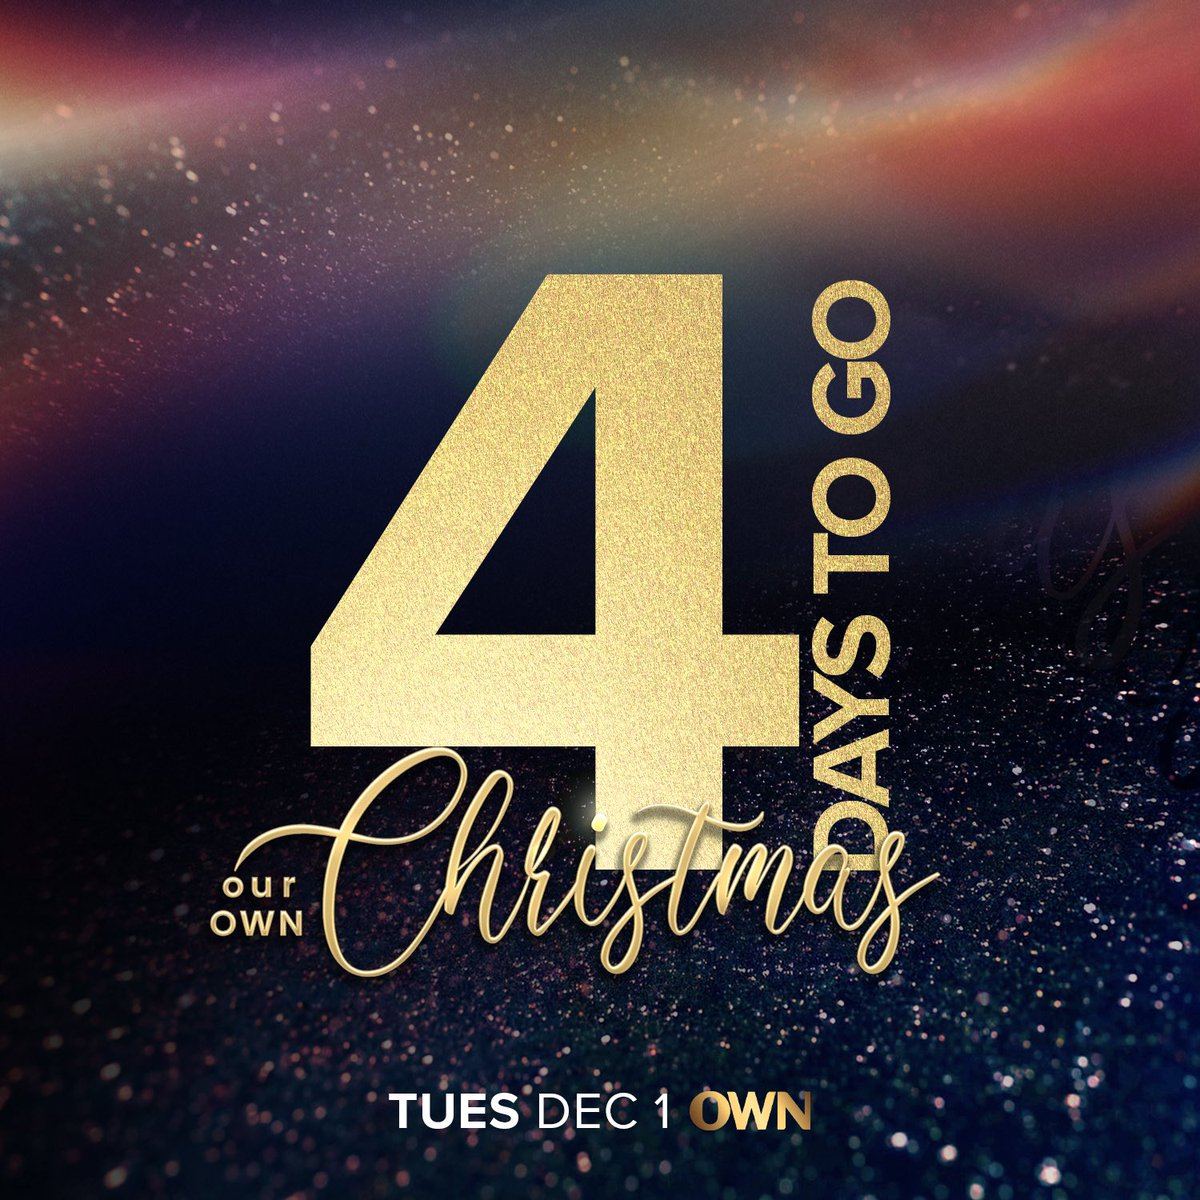 Can you believe it? We're only 4 days away from the gospel music event of the year!! 👉🏾Tune in for #OurOWNChristmas, Tuesday, December 1 @ 9|8c only on @OWNTV!! 🎄🎶 https://t.co/NTJEvXLxm5